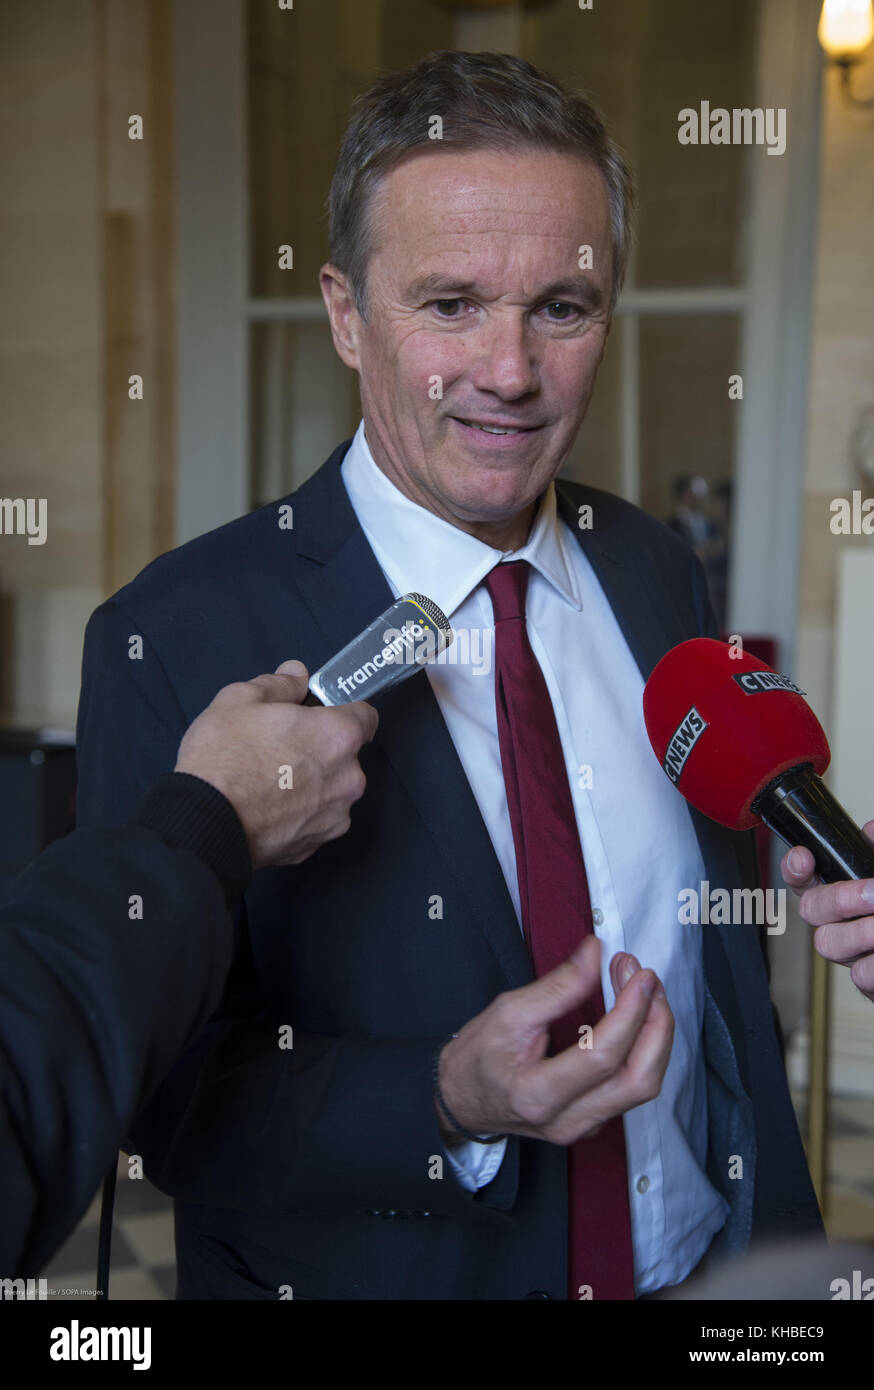 Paris, France. 15th Nov, 2017. French right-wing politician Nicolas Dupont Aigan seen being interviewed by the media. - Stock Image